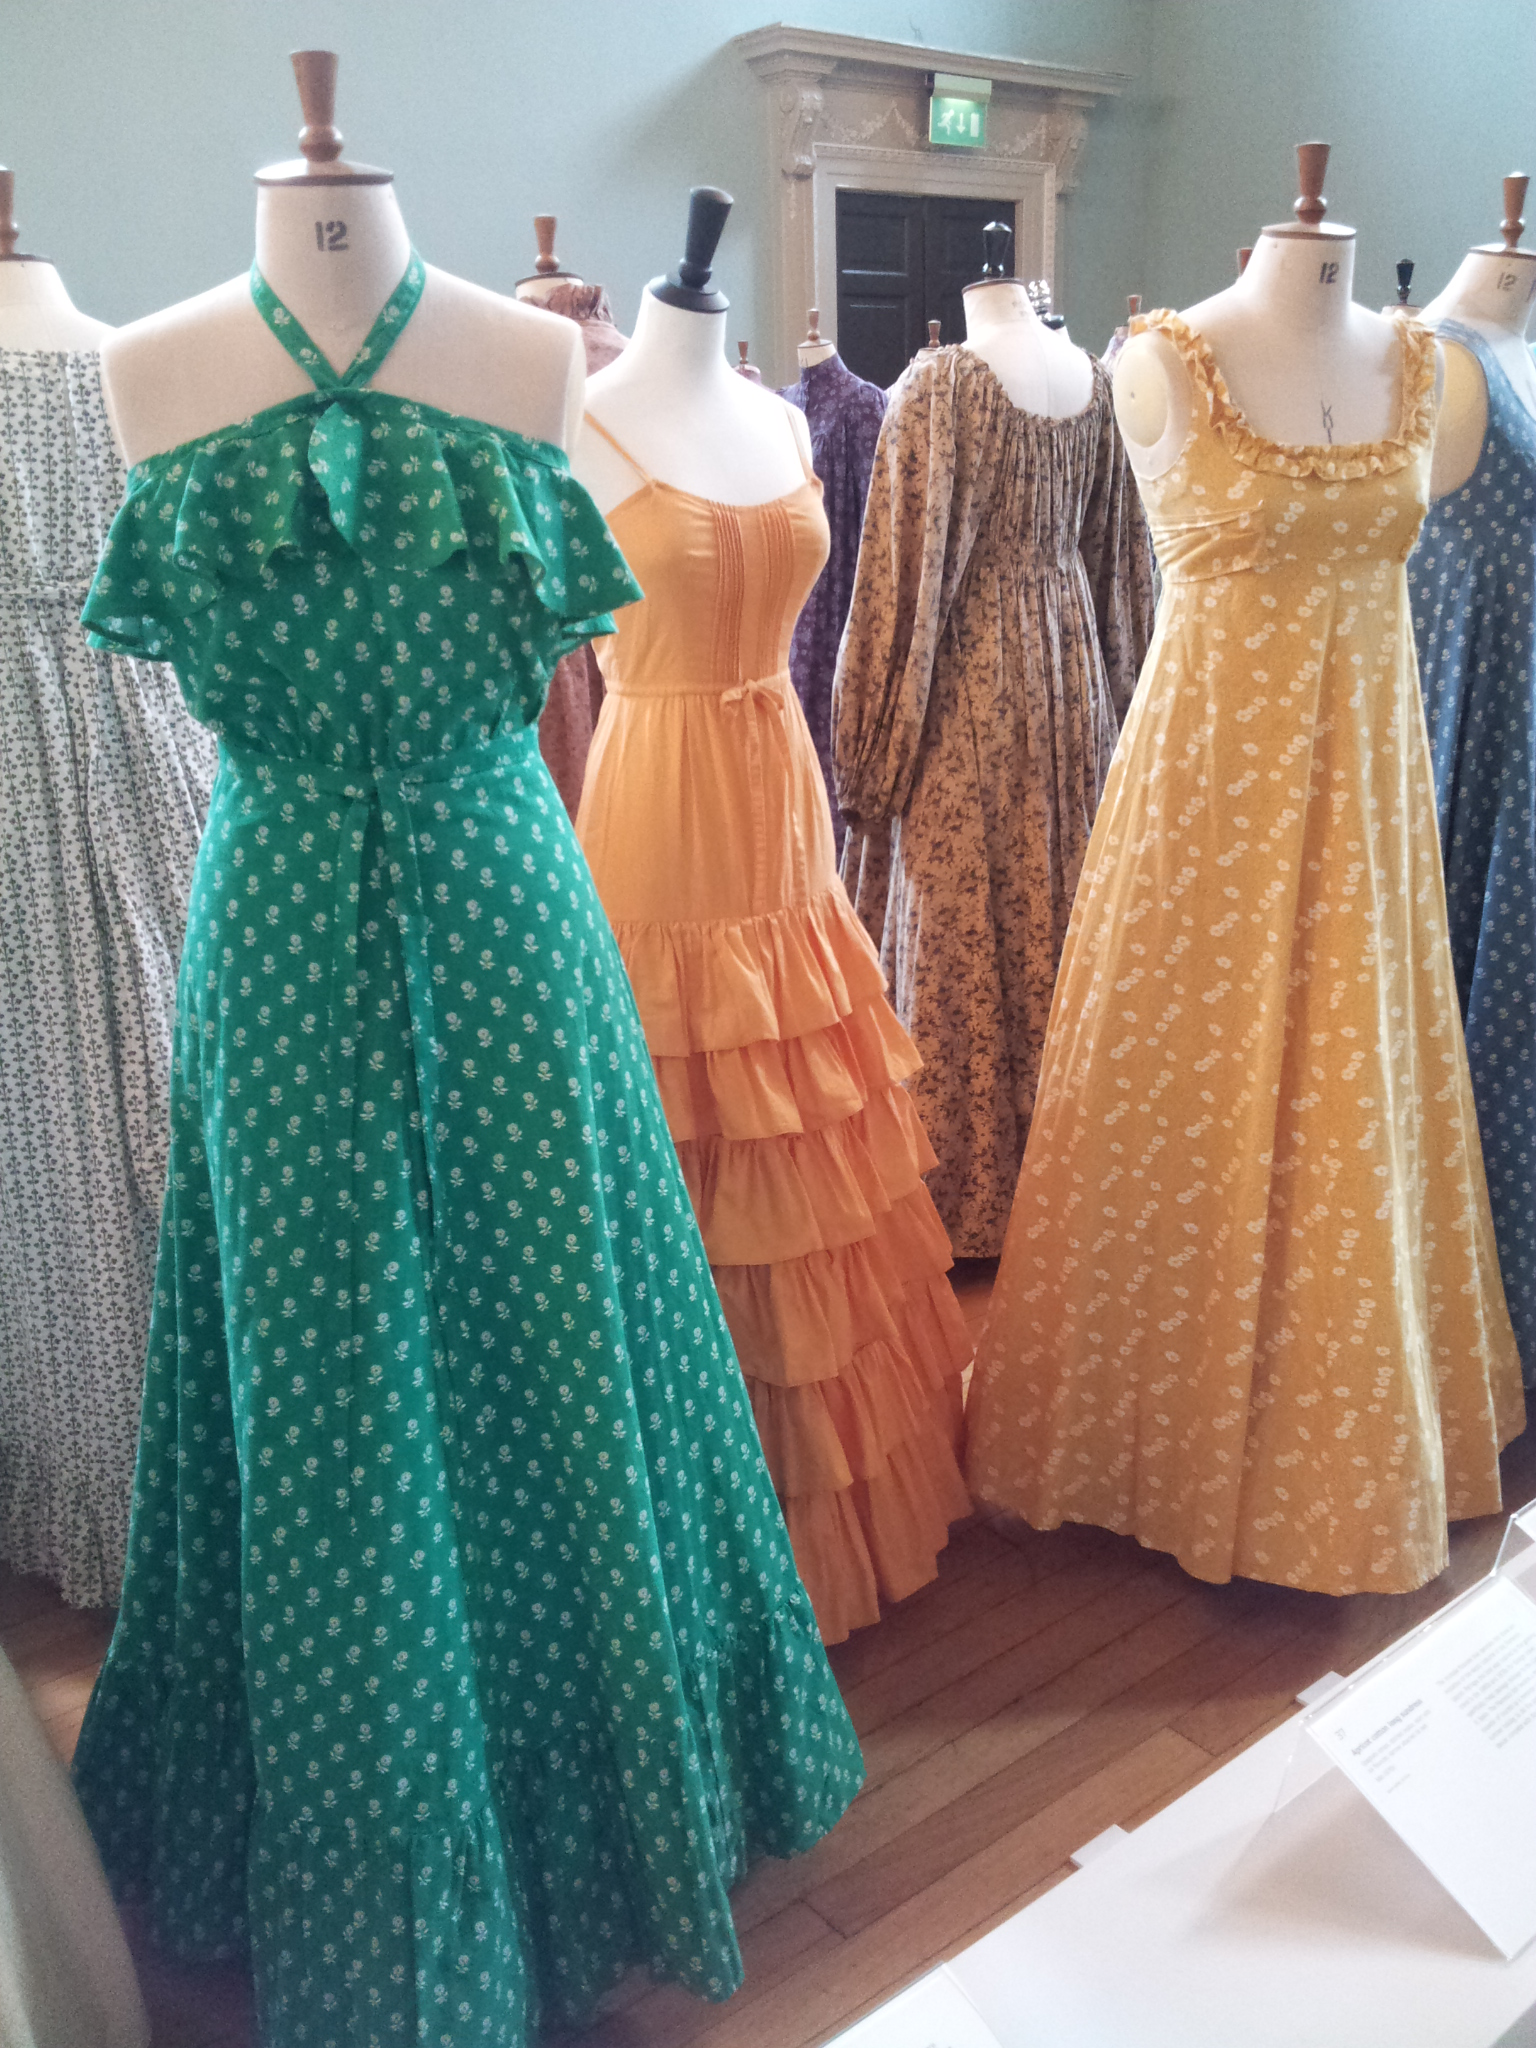 Pictures of 1970s dresses | Style dresses